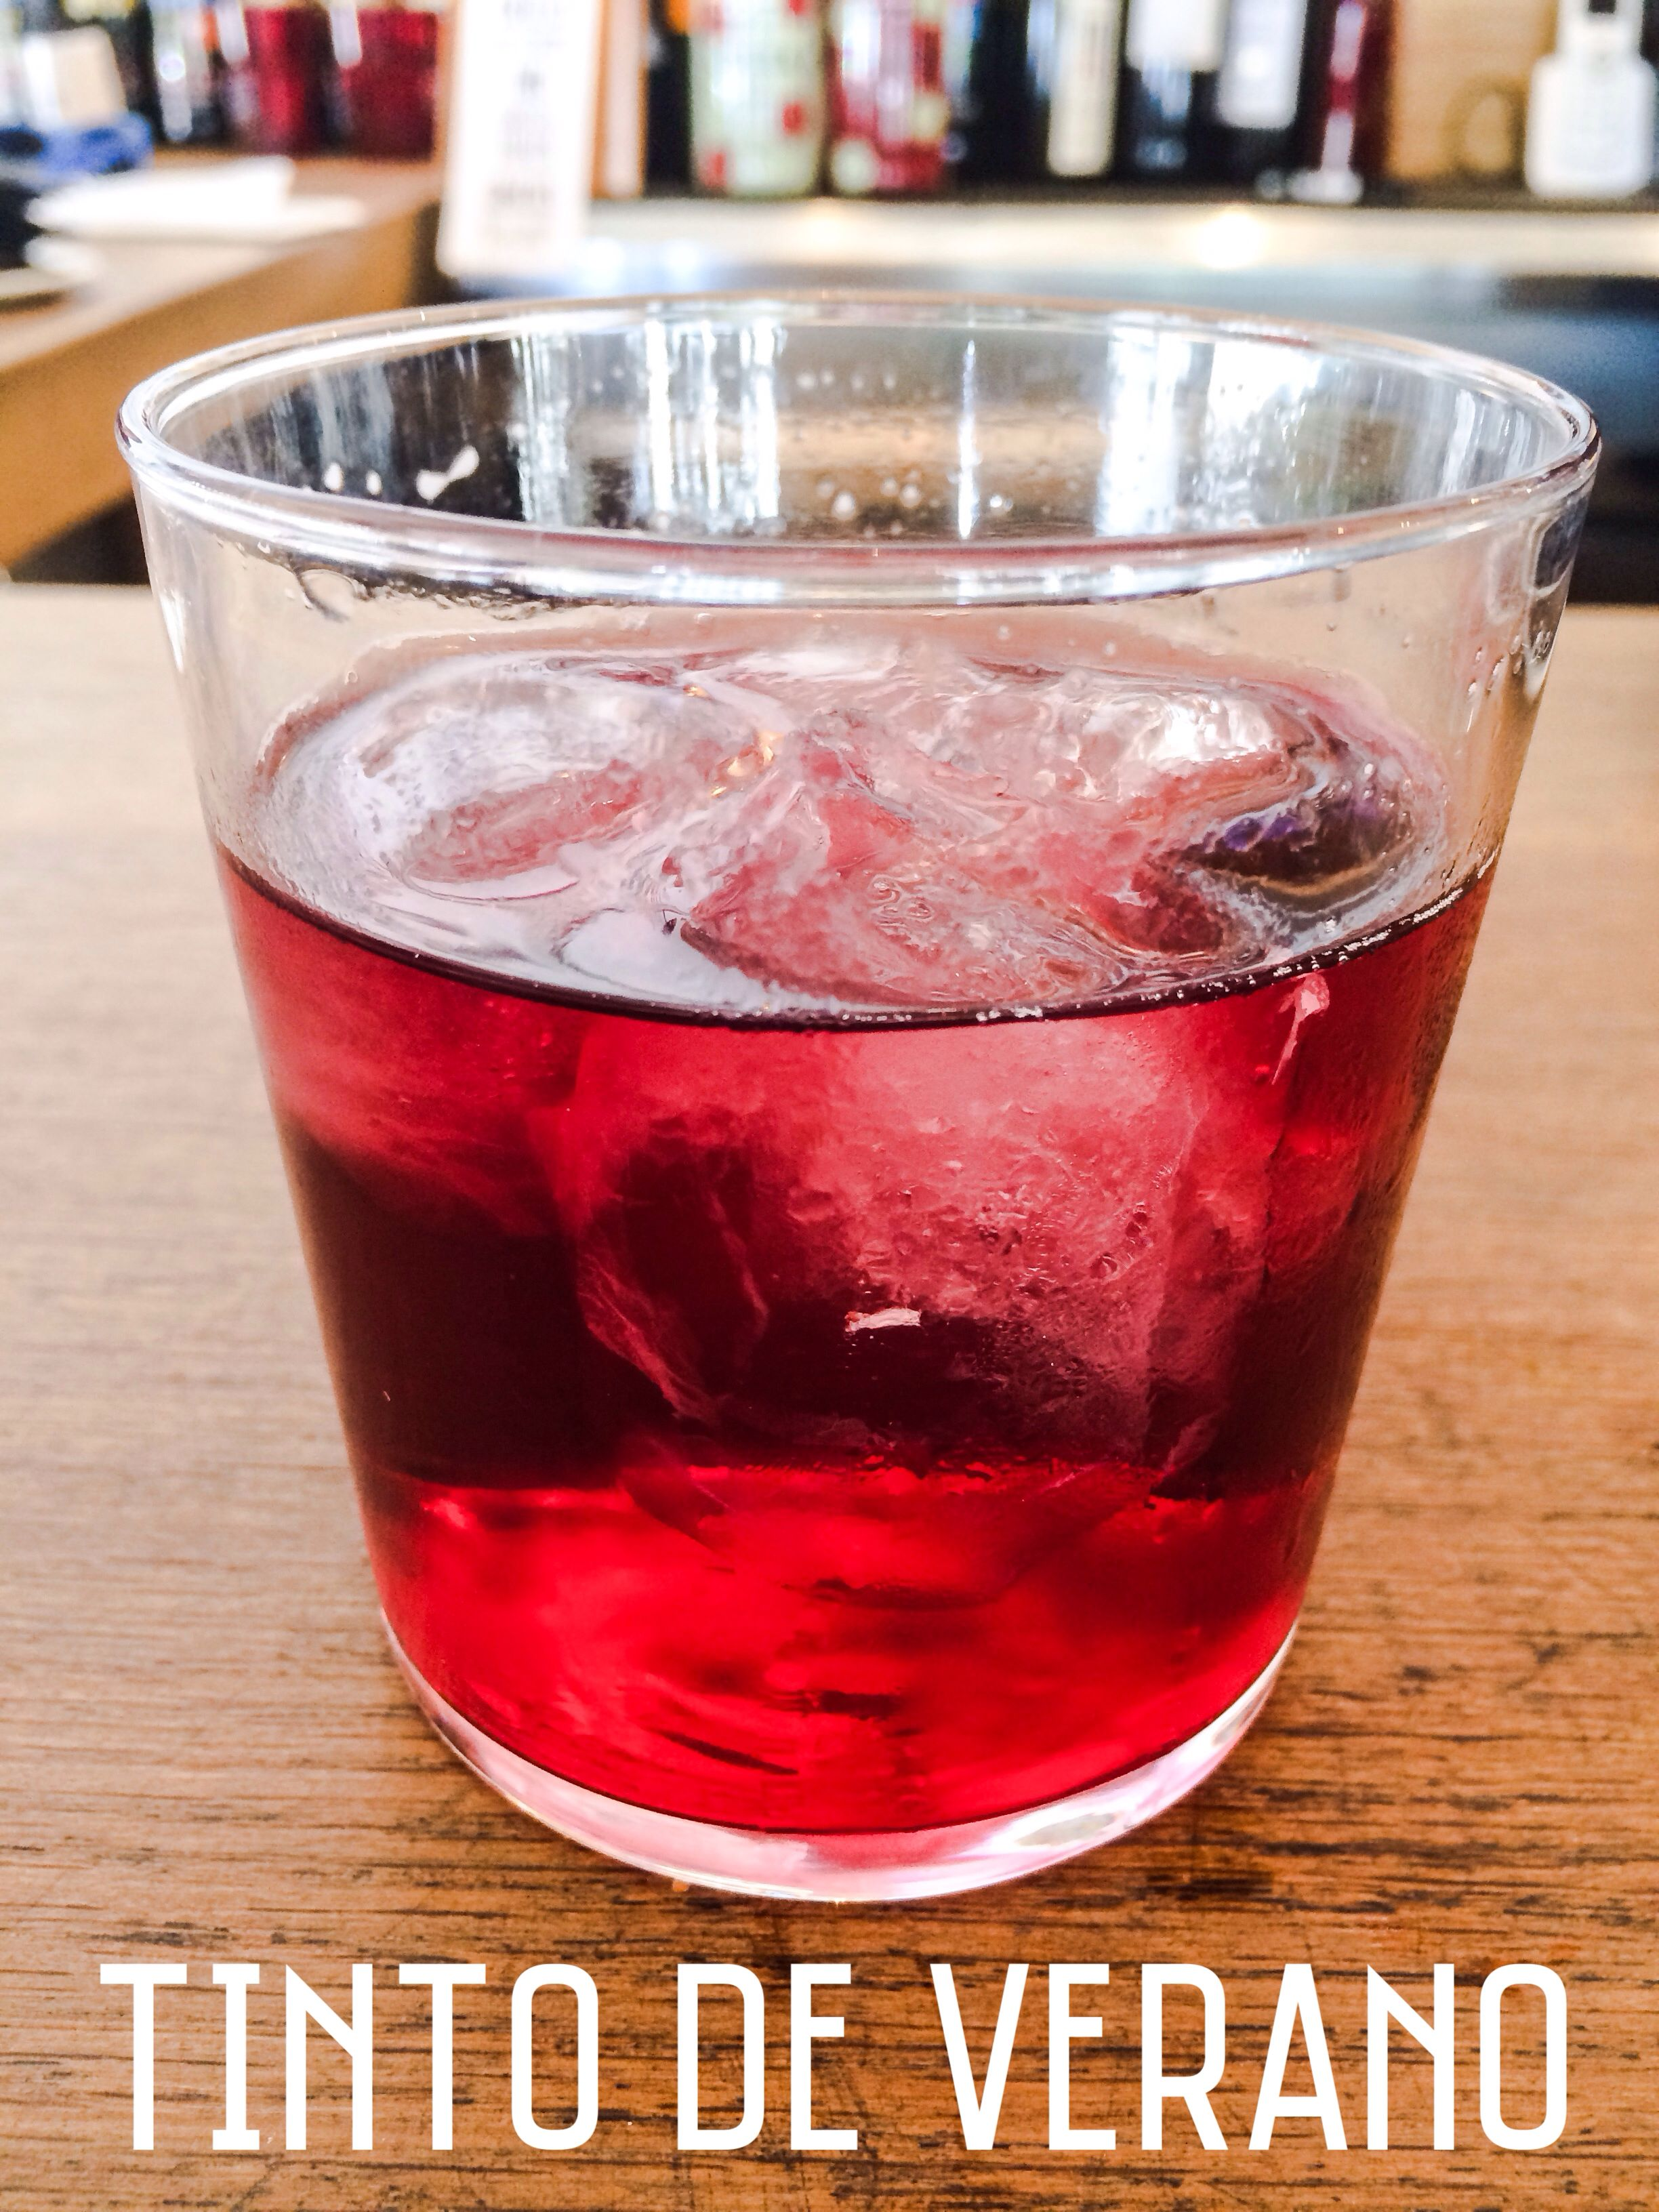 Tinto De Verano The Perfect Spanish Summer Drink And The Lazyman S Version Of Sangria Equal Parts Chilled Red Chill Red Wine Summer Drinks Tinto De Verano